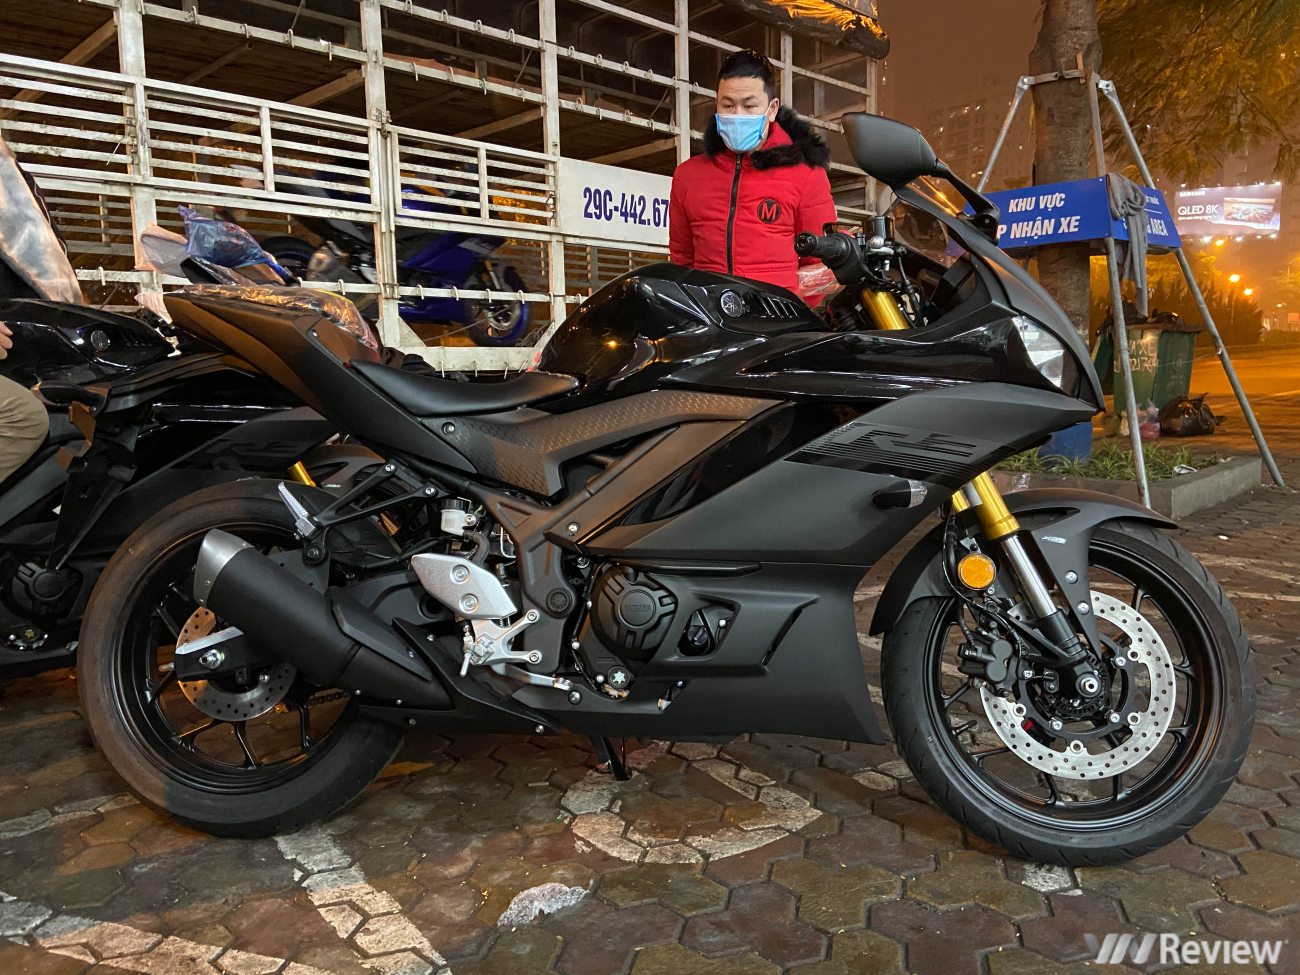 Yamaha R3 2020 nhap khau tu nhan co gia ban gay soc so voi R3 the he cu - 6